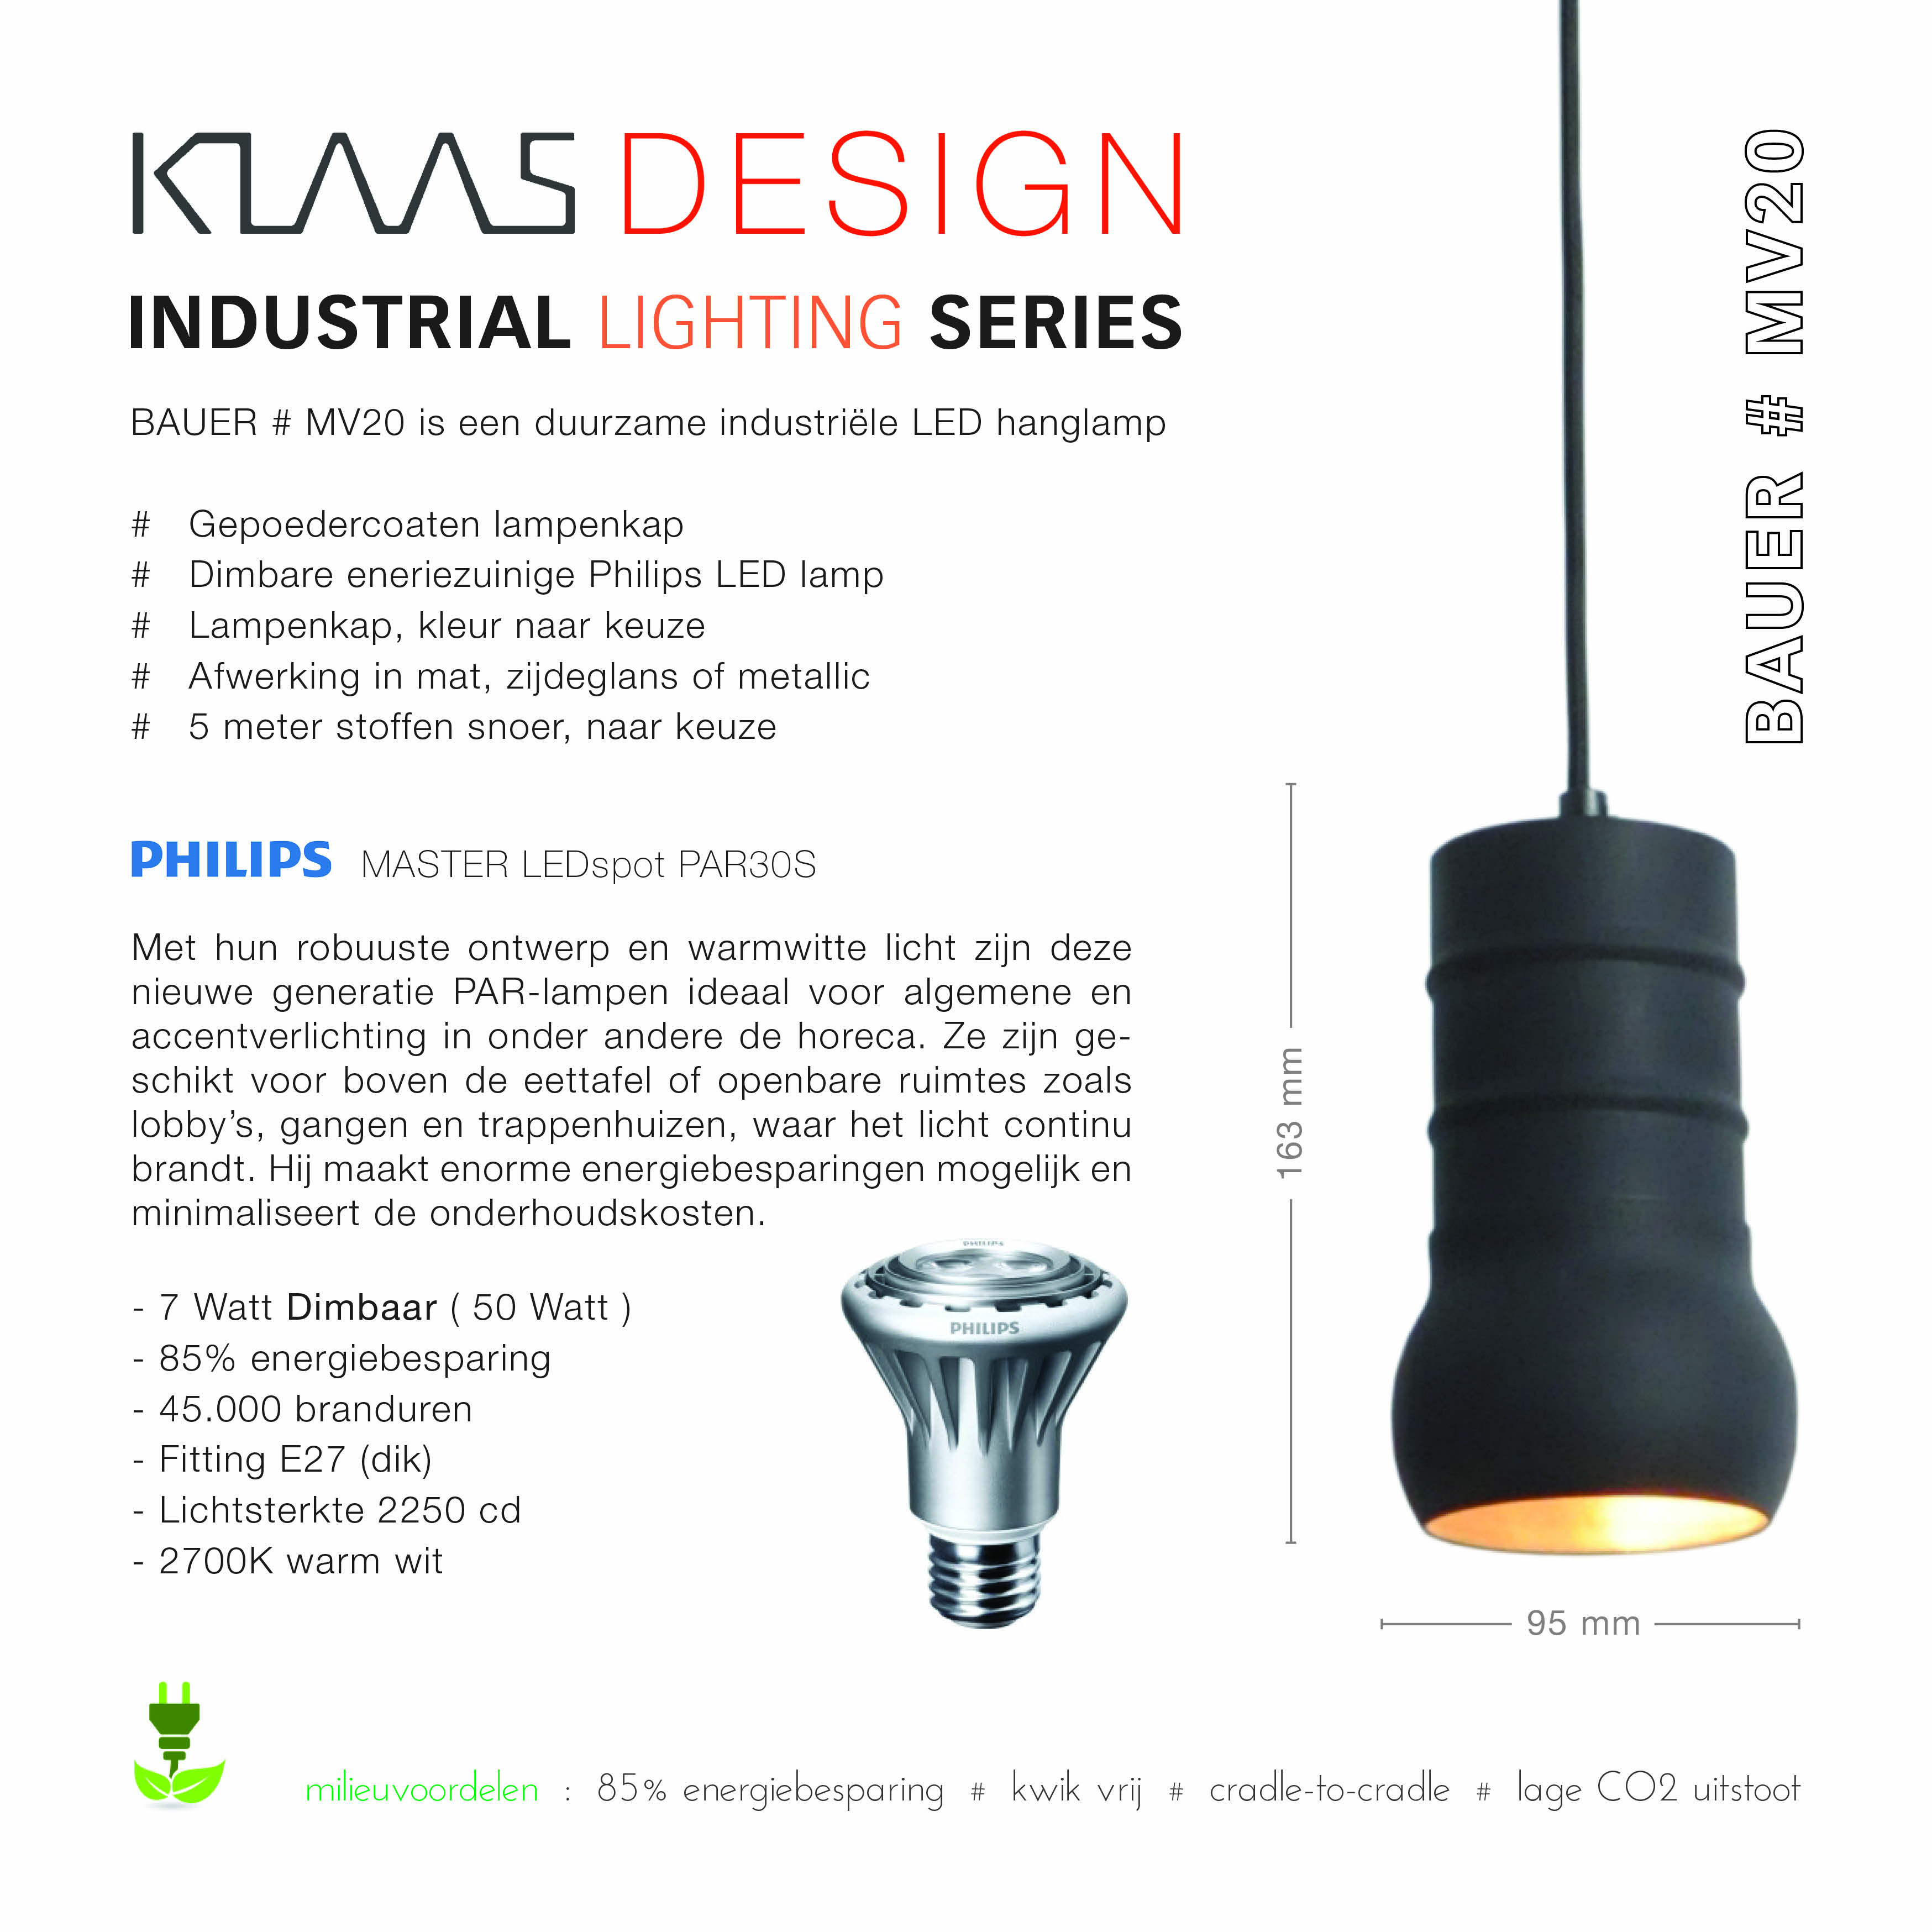 Klaas Design - Bauer MV20 - lighting series